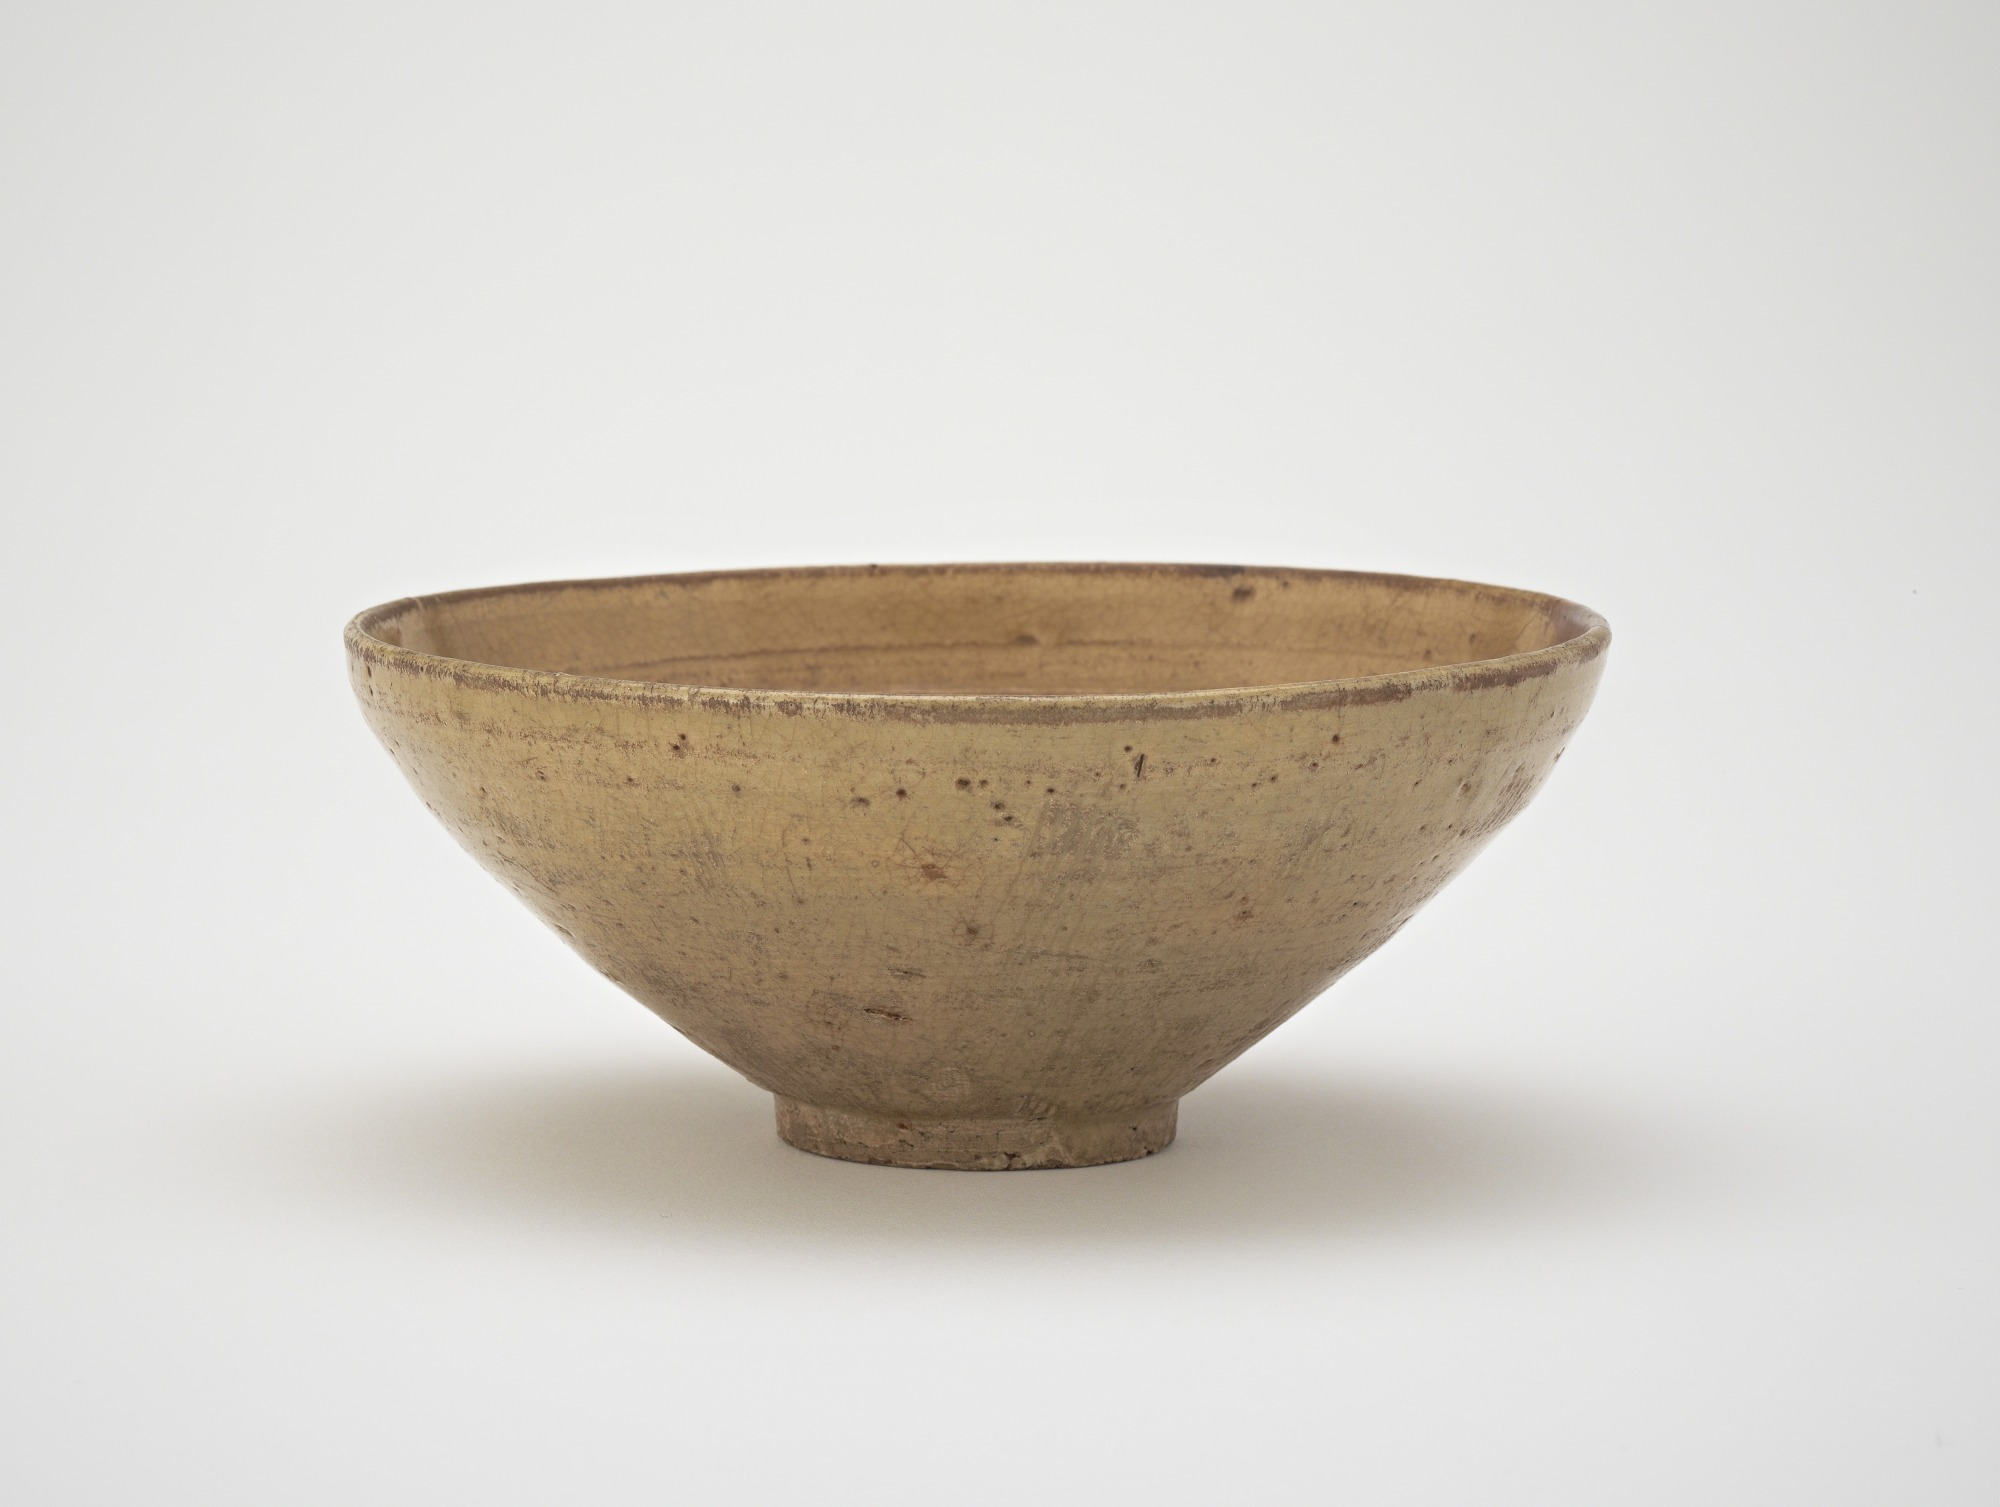 Bowl with incised decoration, Dongan-type ware